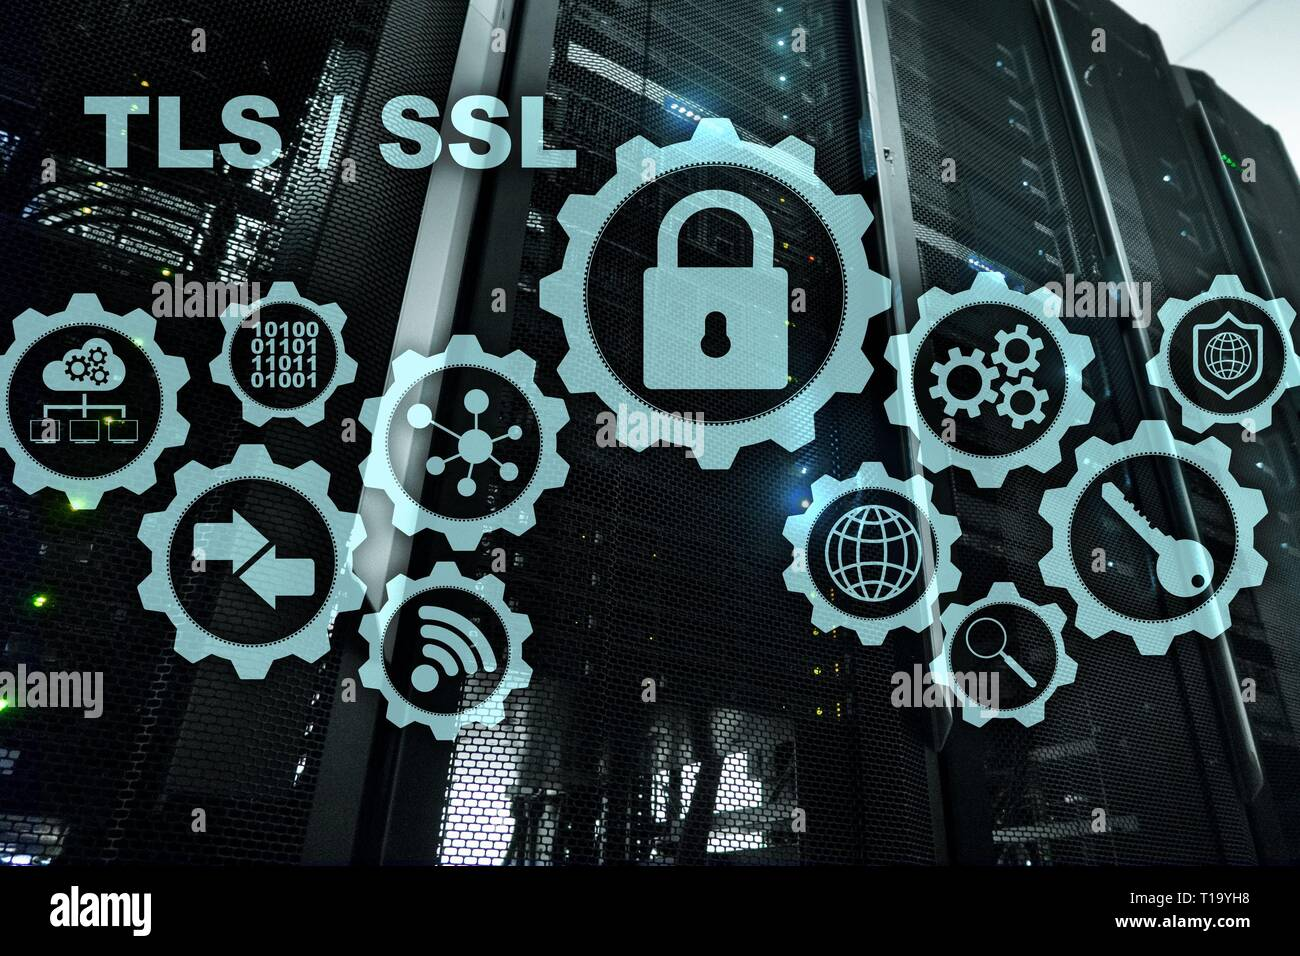 Transport Layer Security. Secure Socket Layer. TLS SSL. ryptographic protocols provide secured communications. - Stock Image